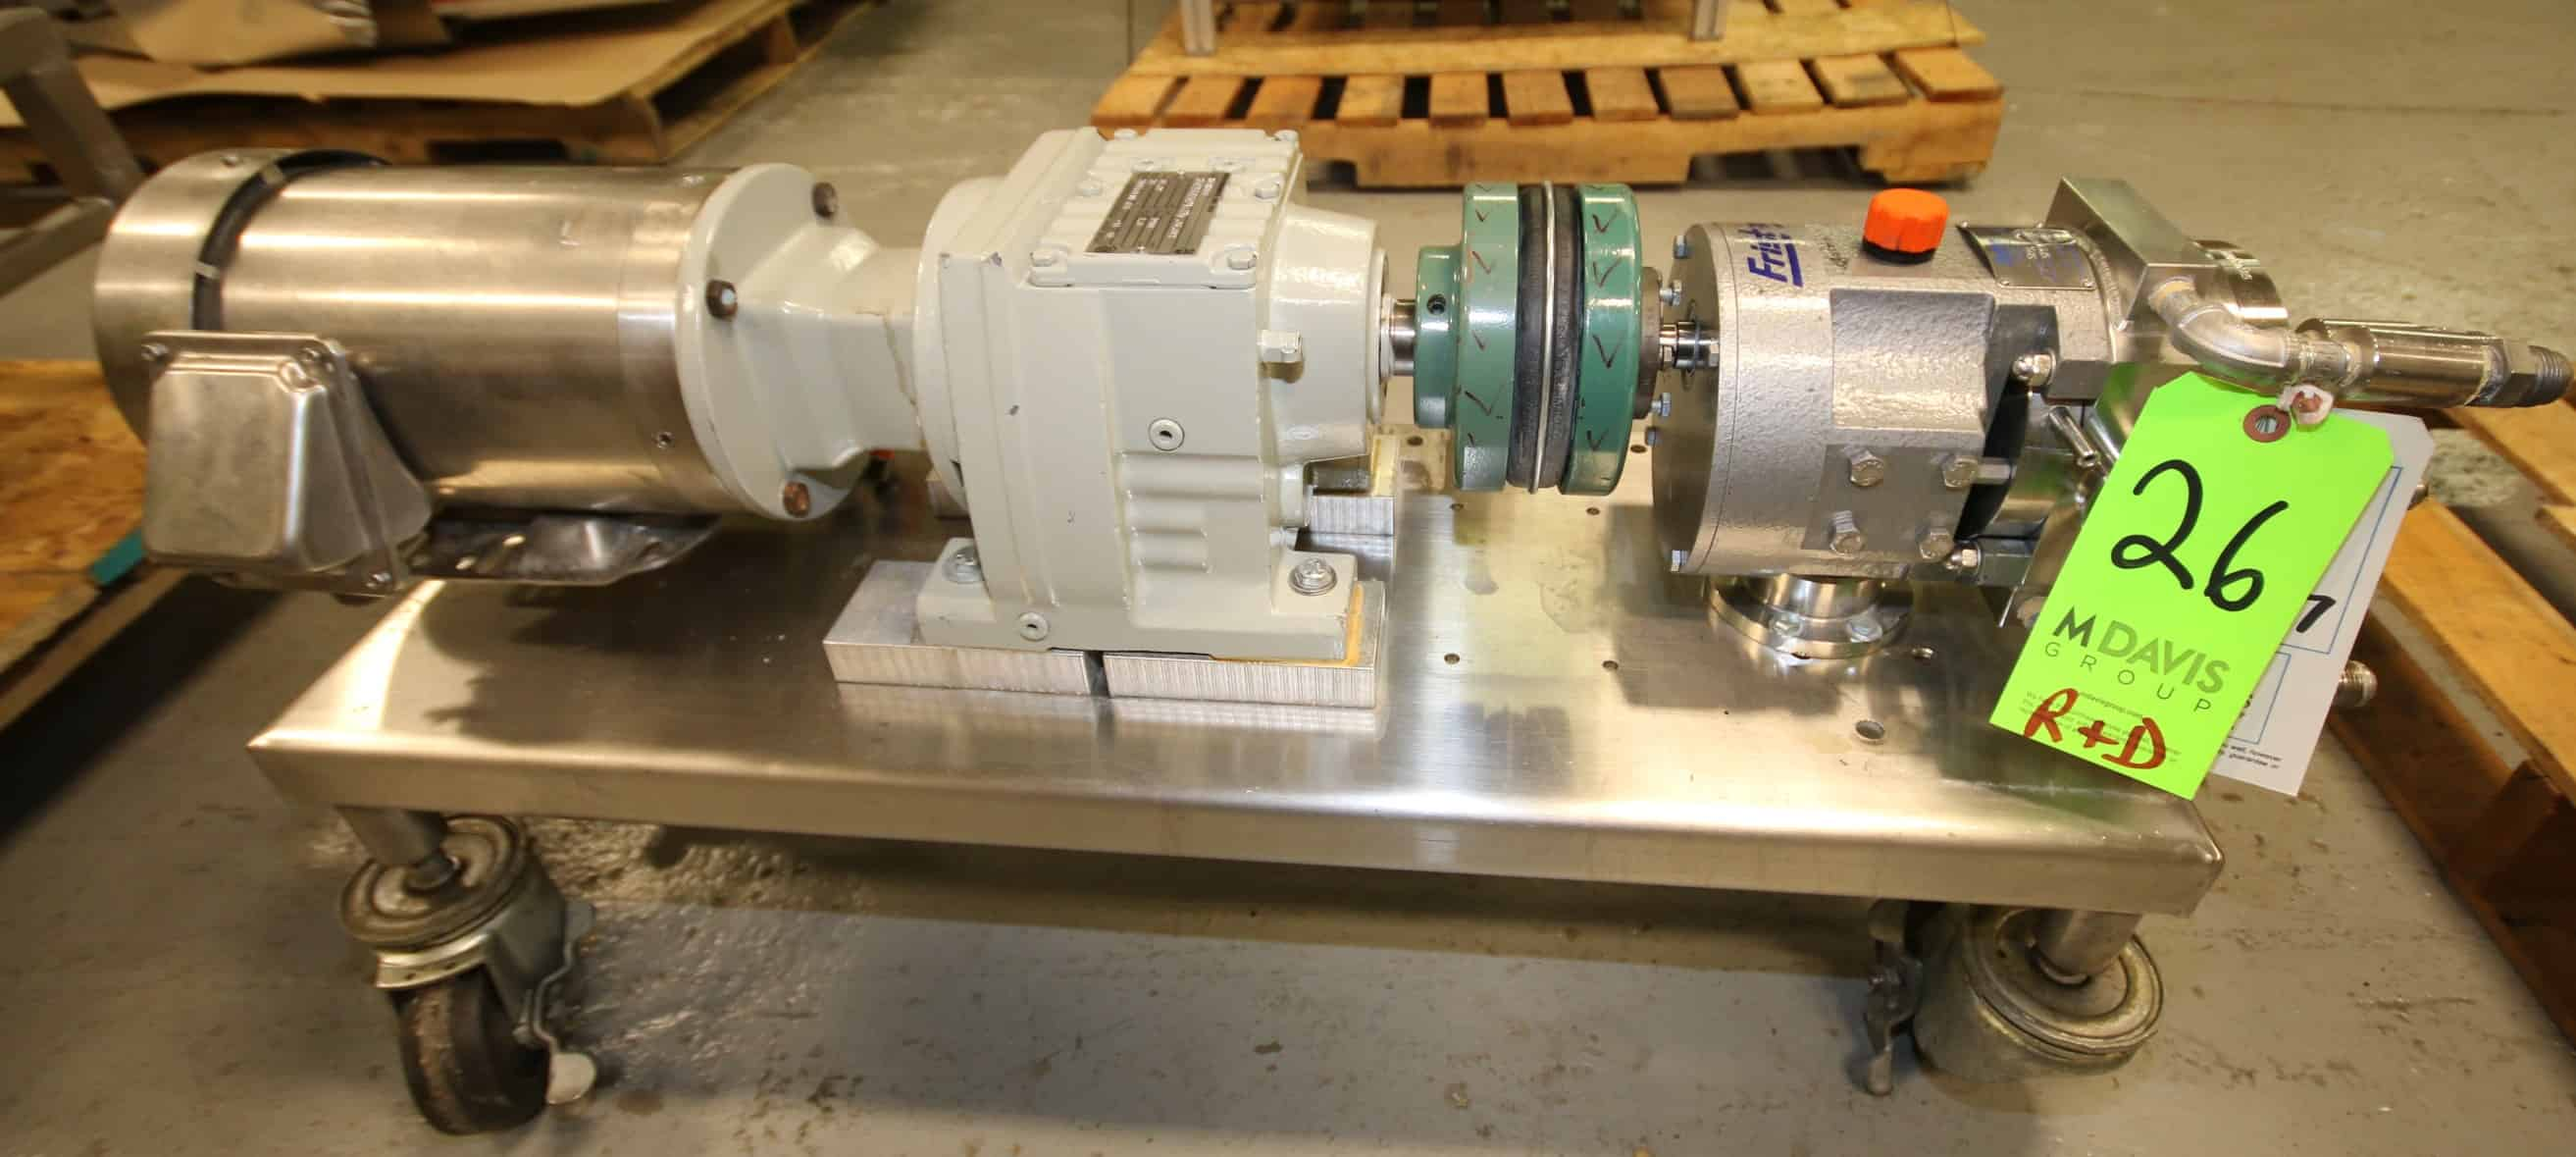 Fristam Positive Displacement Pump, Model 58S, SN 0601713, with Jacketed Head, 1.5 Clamp Type Connections, Includes Rotors, SEW / Dayton Drive Motor 3/2 hp / 3450/2850 rpm S/S Clad Motor, 208/230/460V 3 Phase, Mounted on S/S Frame with Casters